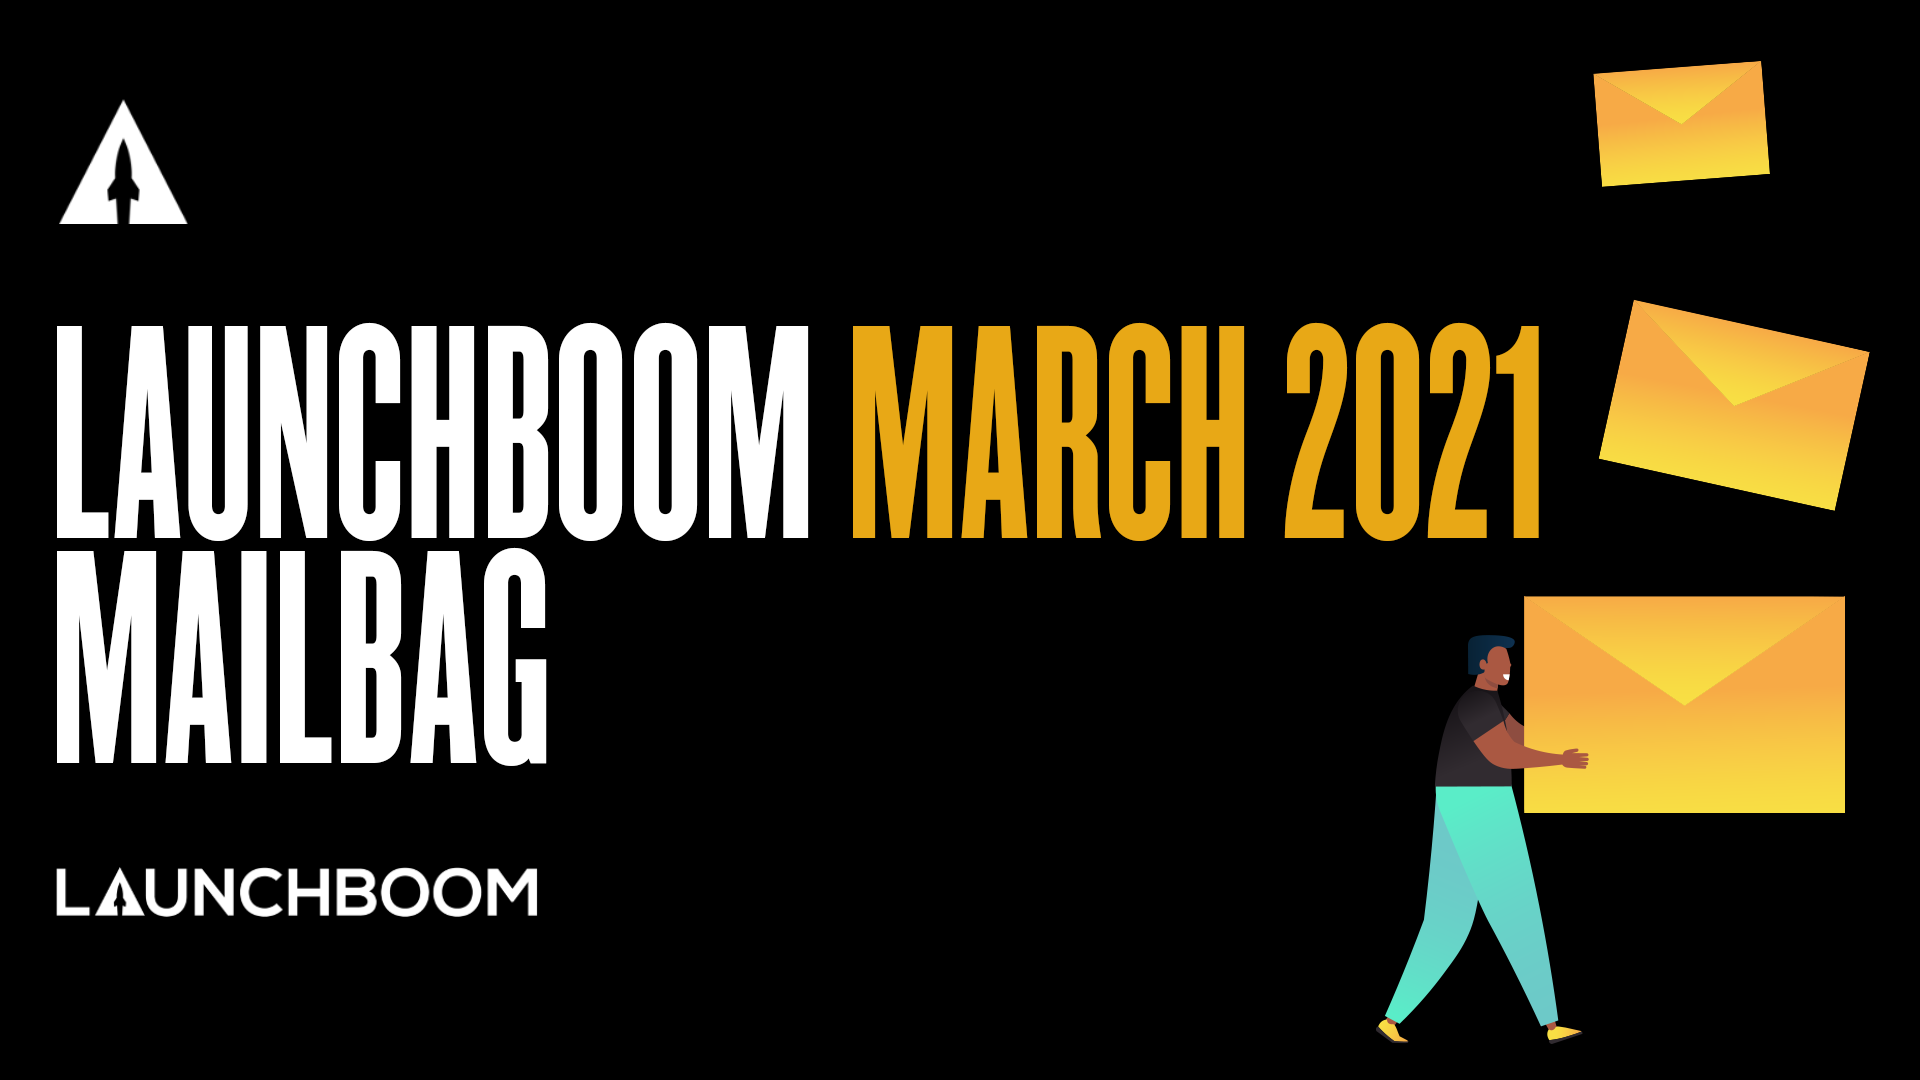 LaunchBoom March 2021 Mailbag